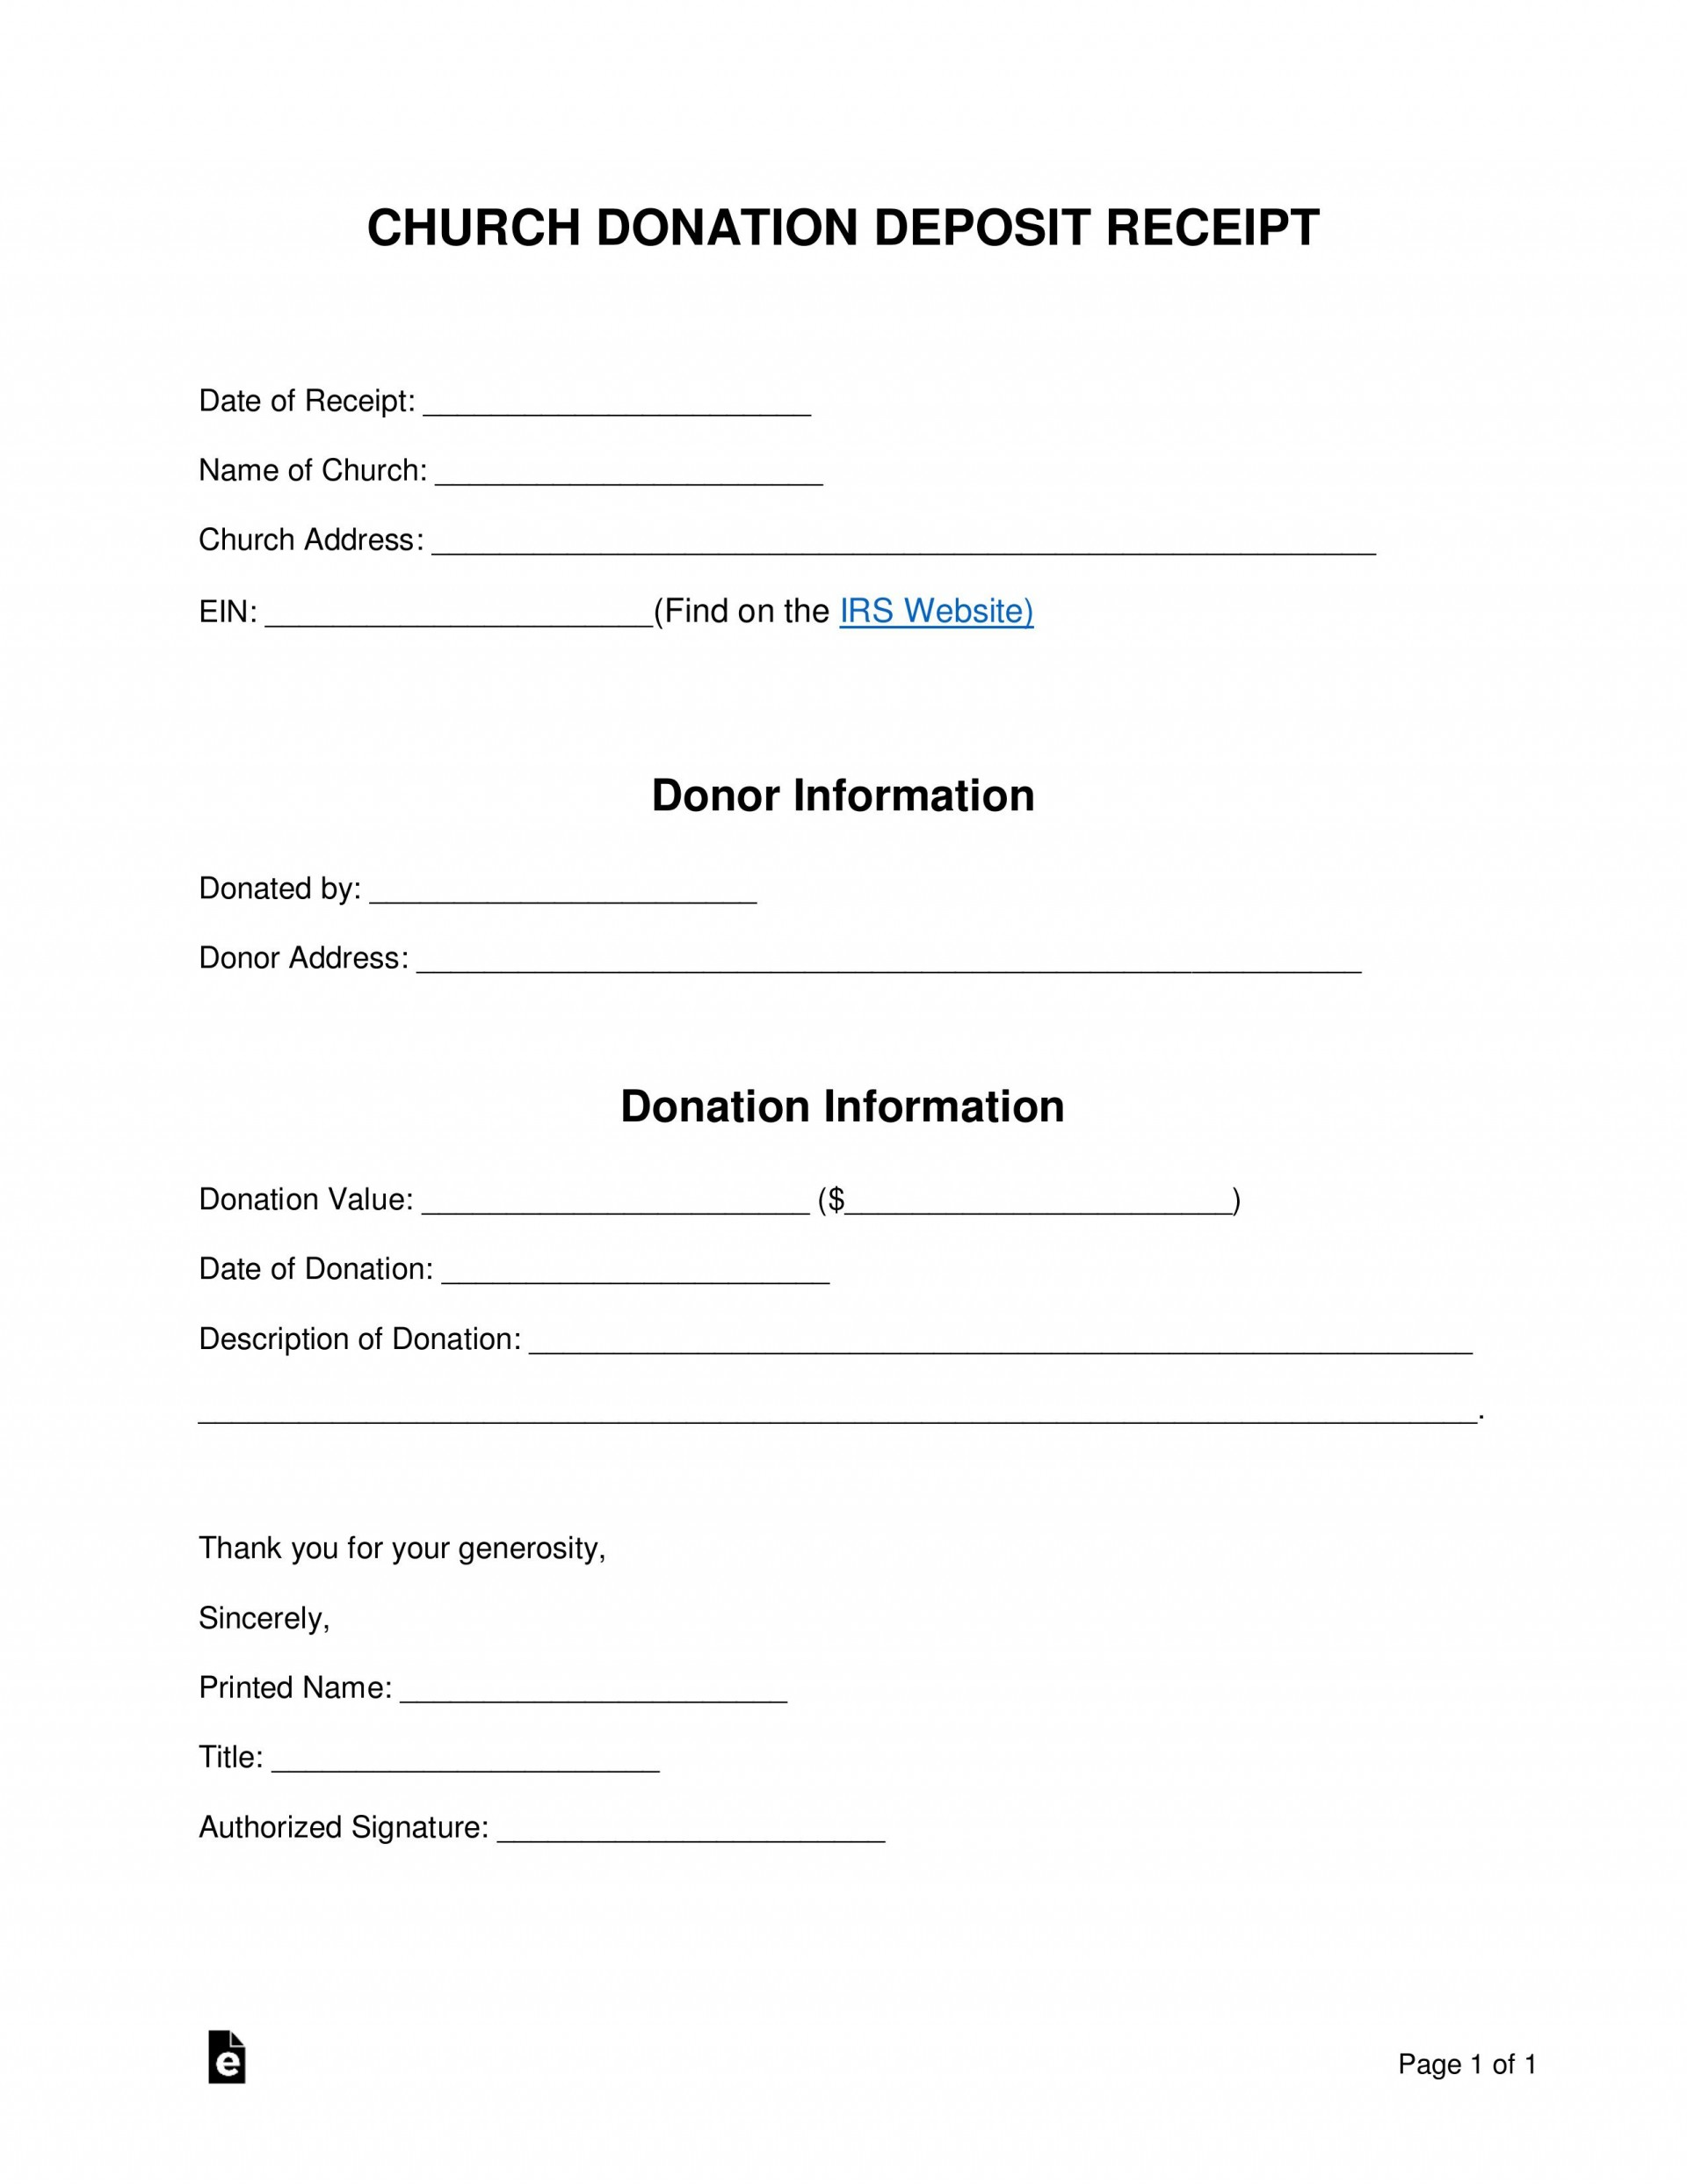 004 Stunning Tax Donation Form Template Highest Quality  Ir Charitable Receipt Deductible Example1920